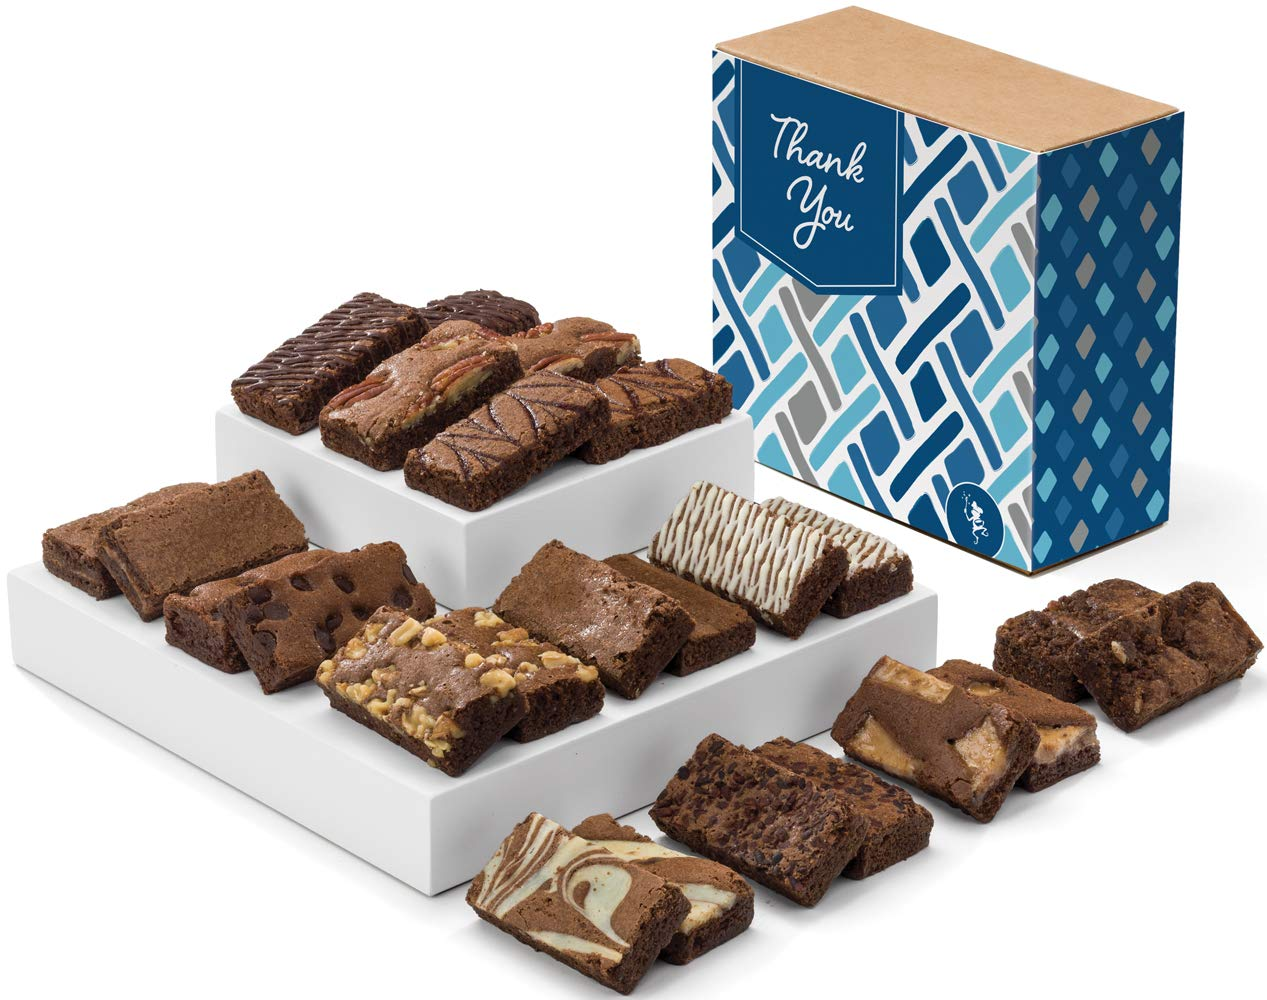 Fairytale Brownies Thank You Sprite 24 Gourmet Chocolate Food Gift Basket - 3 Inch x 1.5 Inch Snack-Size Brownies - 24 Pieces - Item CY224